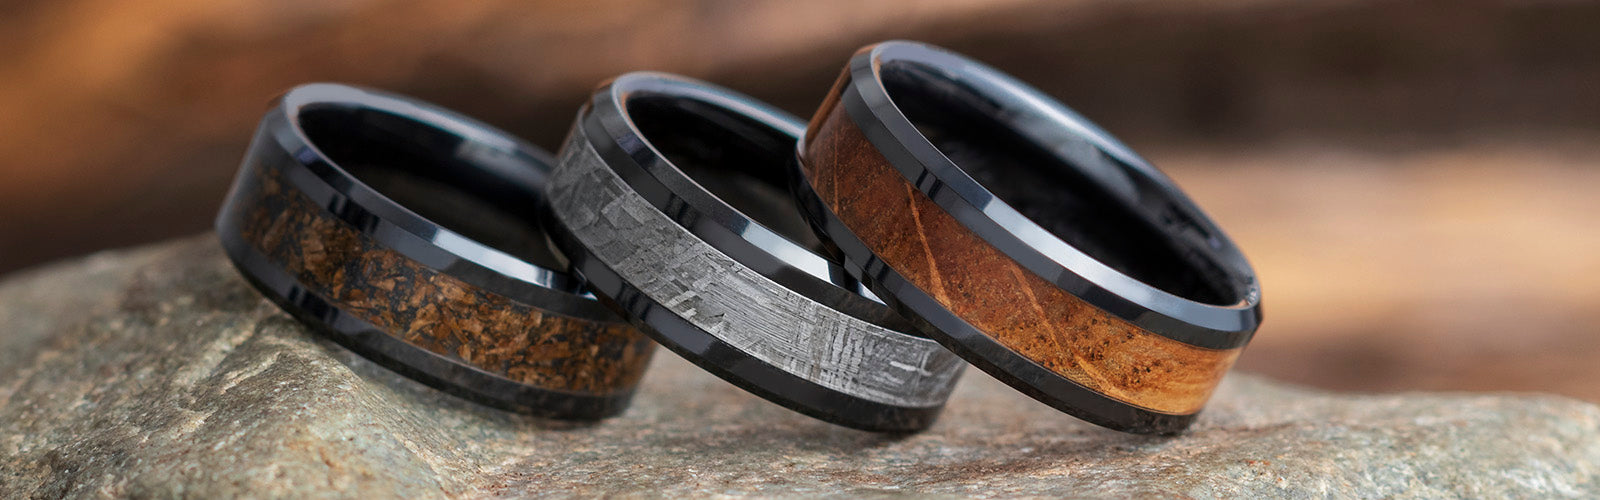 Single-Inlay Wedding Bands